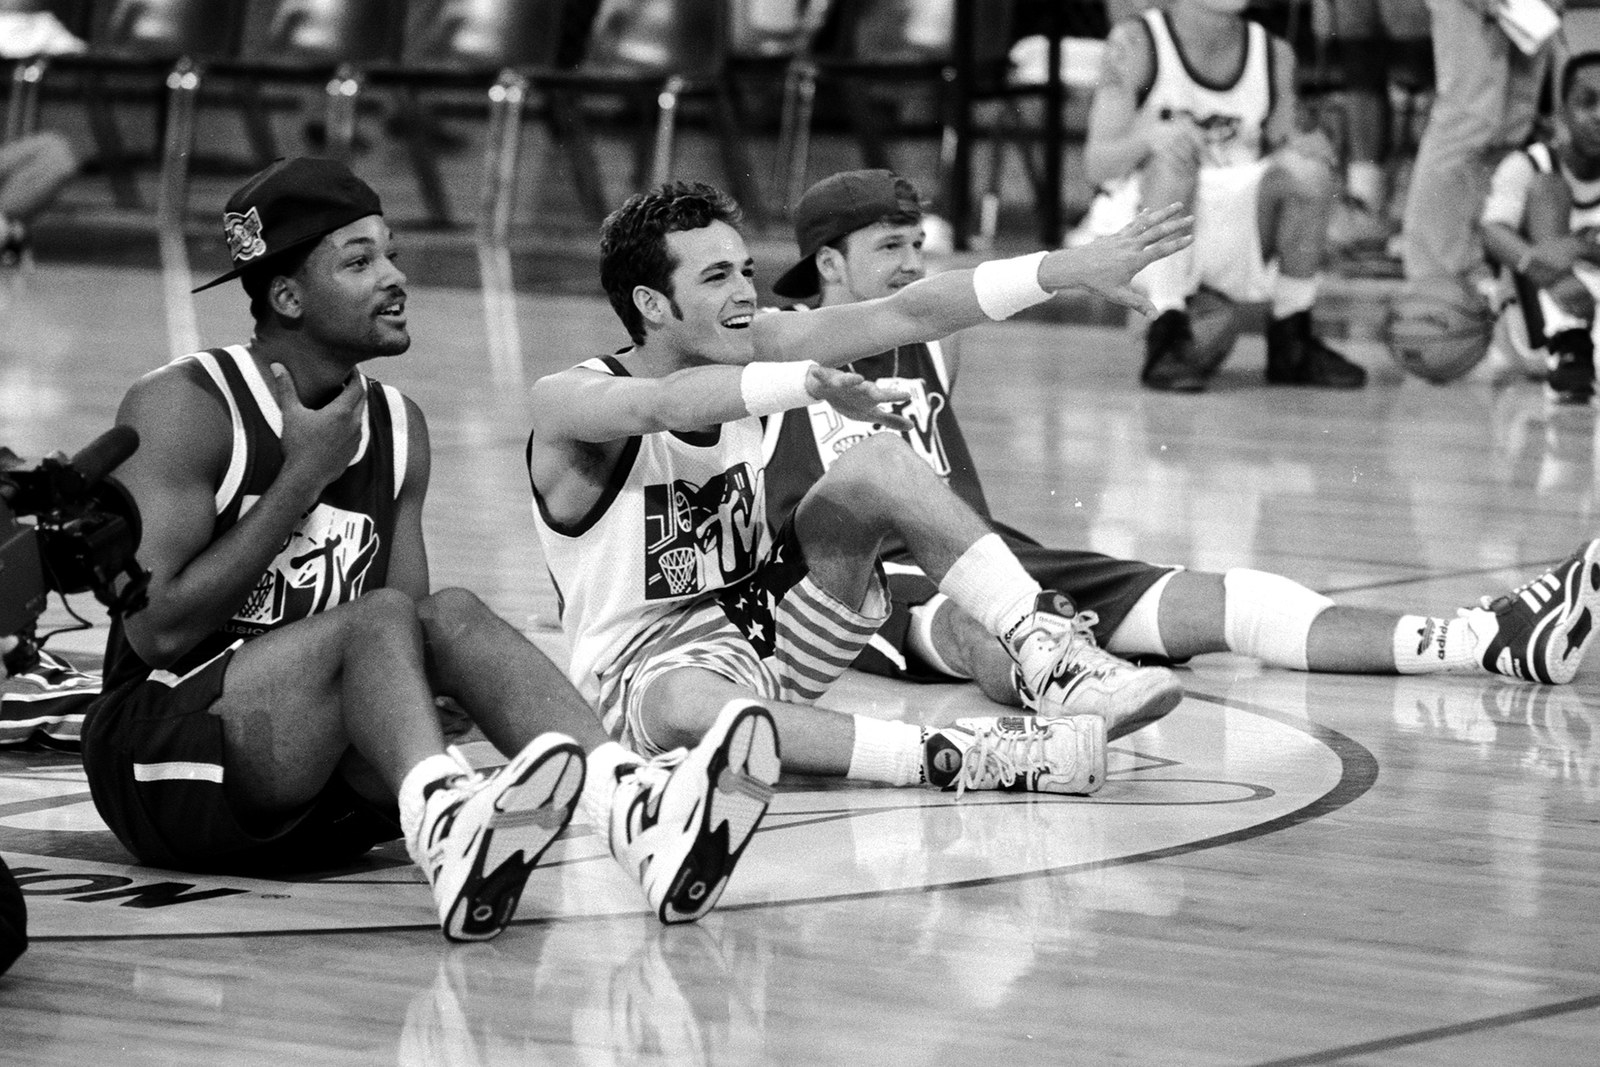 Will Smith and Luke Perry the 1991 MTV Rock 'n Jock Basketball game in Los Angeles.